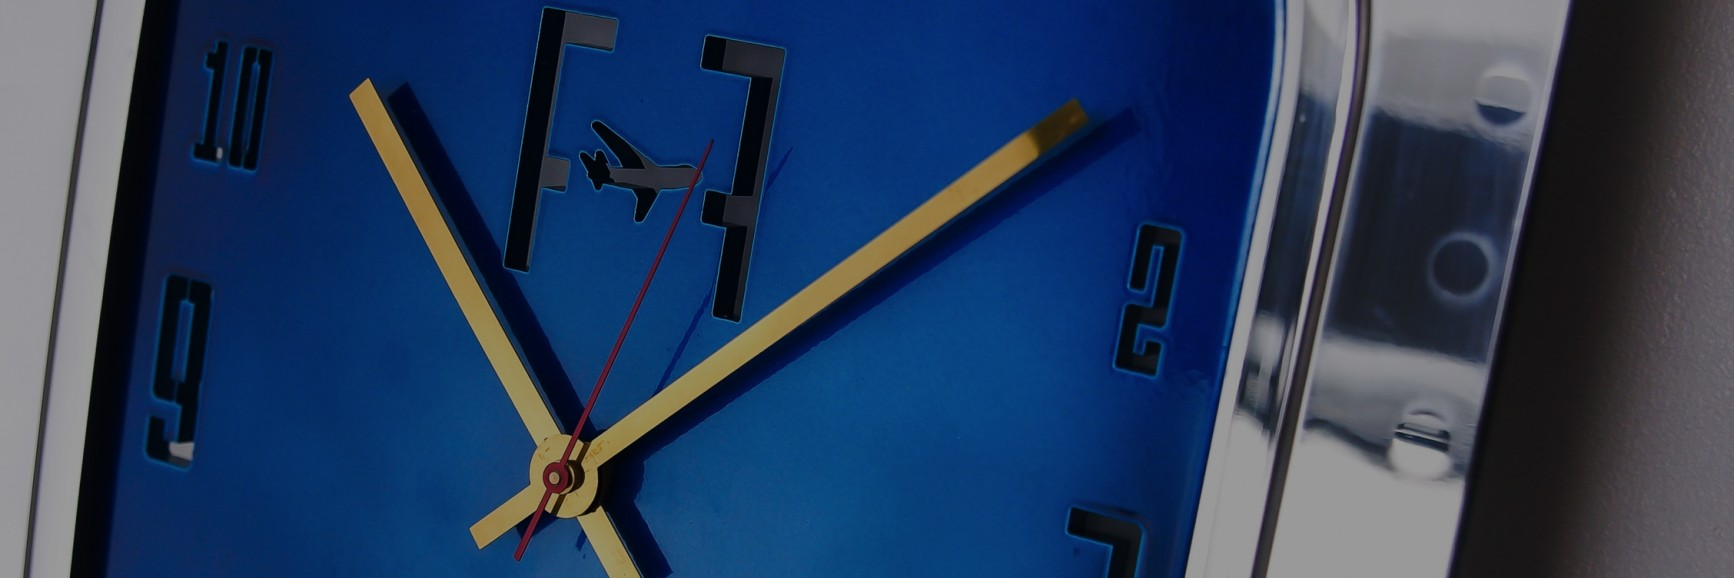 Slimline-Clock-Header-1734x578